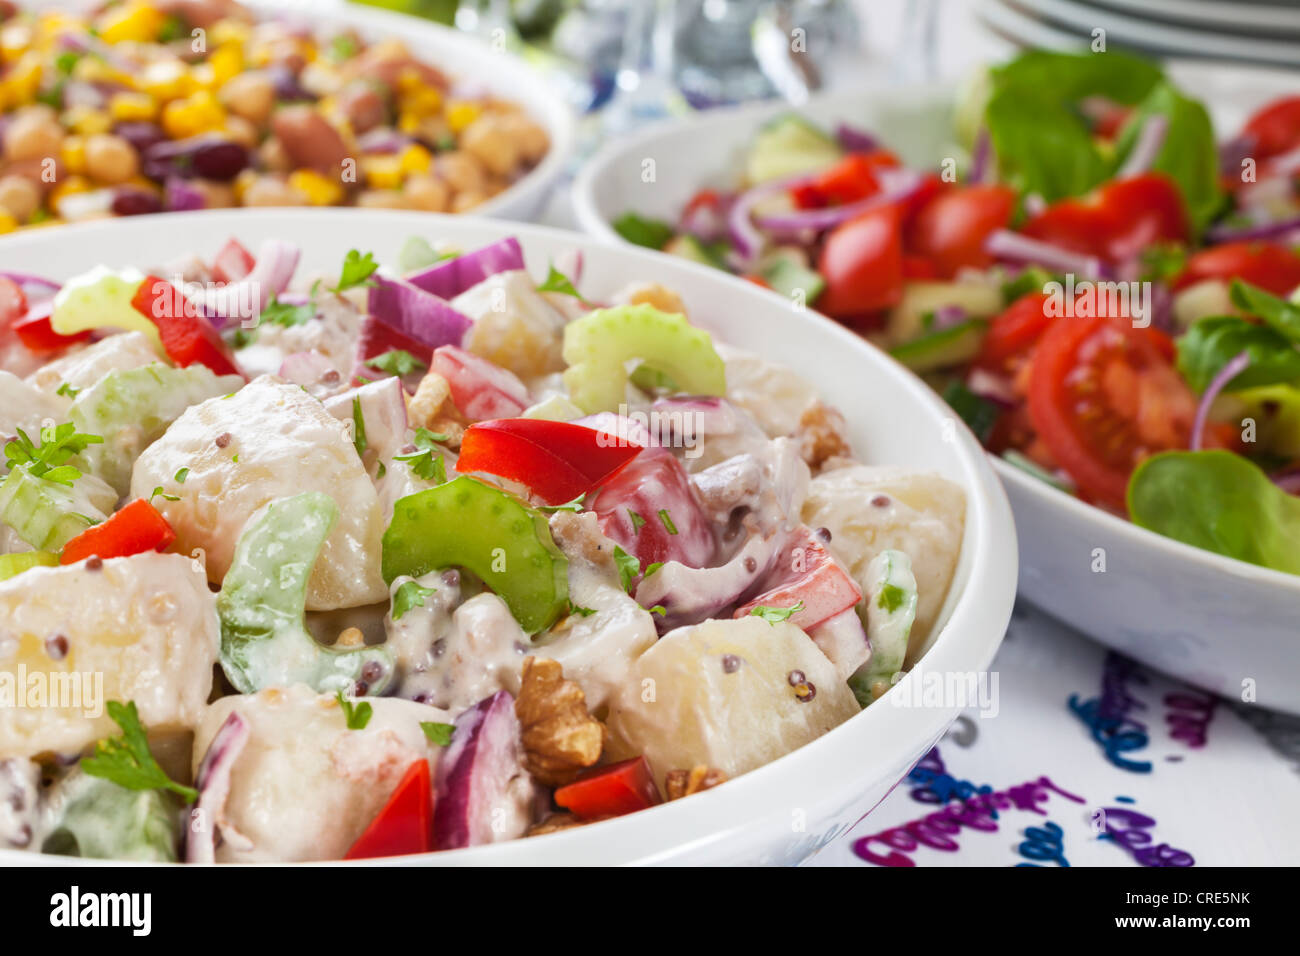 An Assortment Of Salads On A Buffet Table With Party Decorations